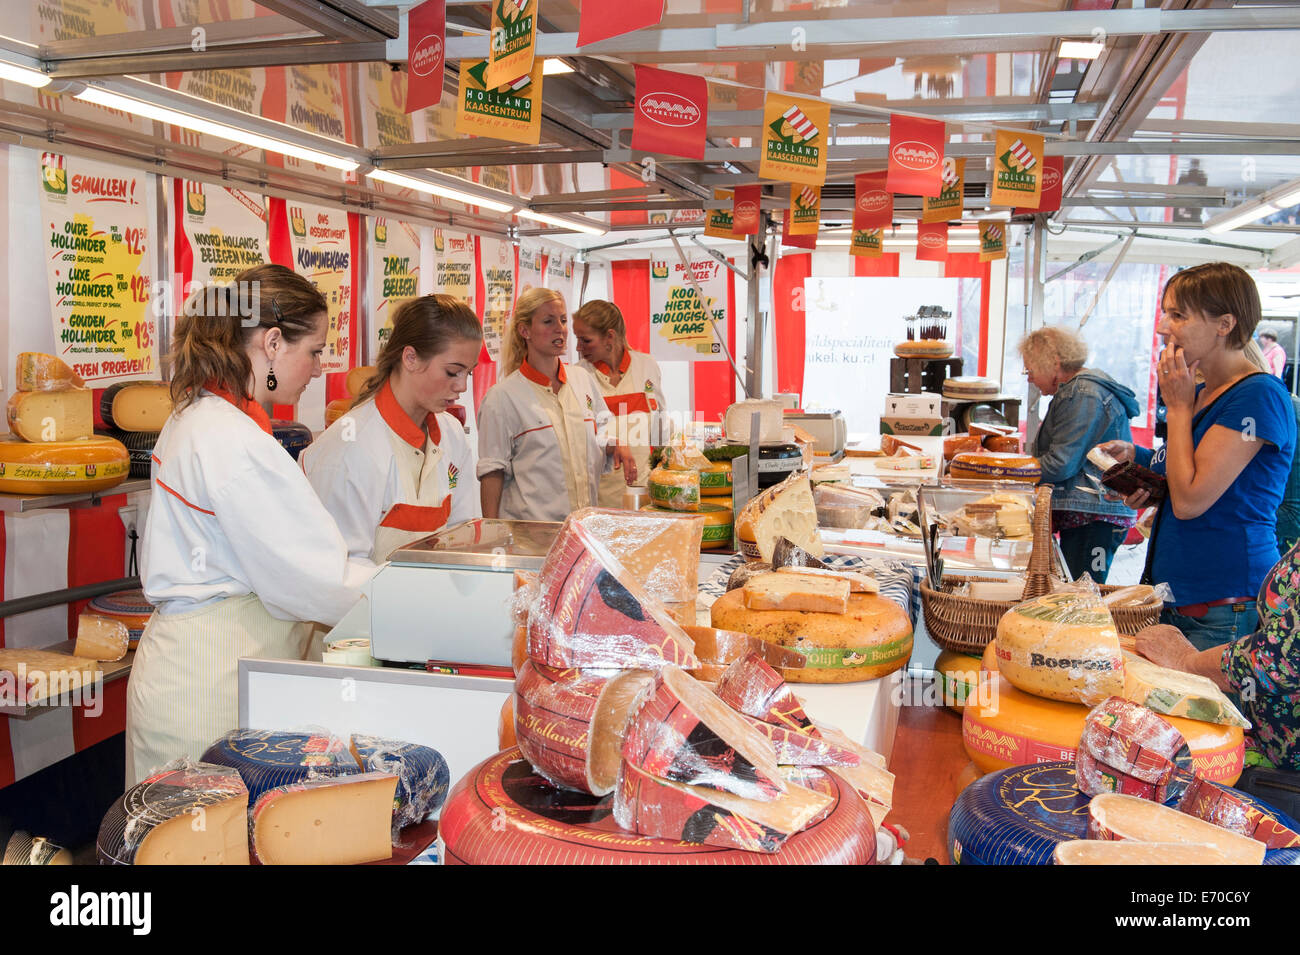 A cheese stall in the weekly market in Amersfoort, Netherlands - Stock Image